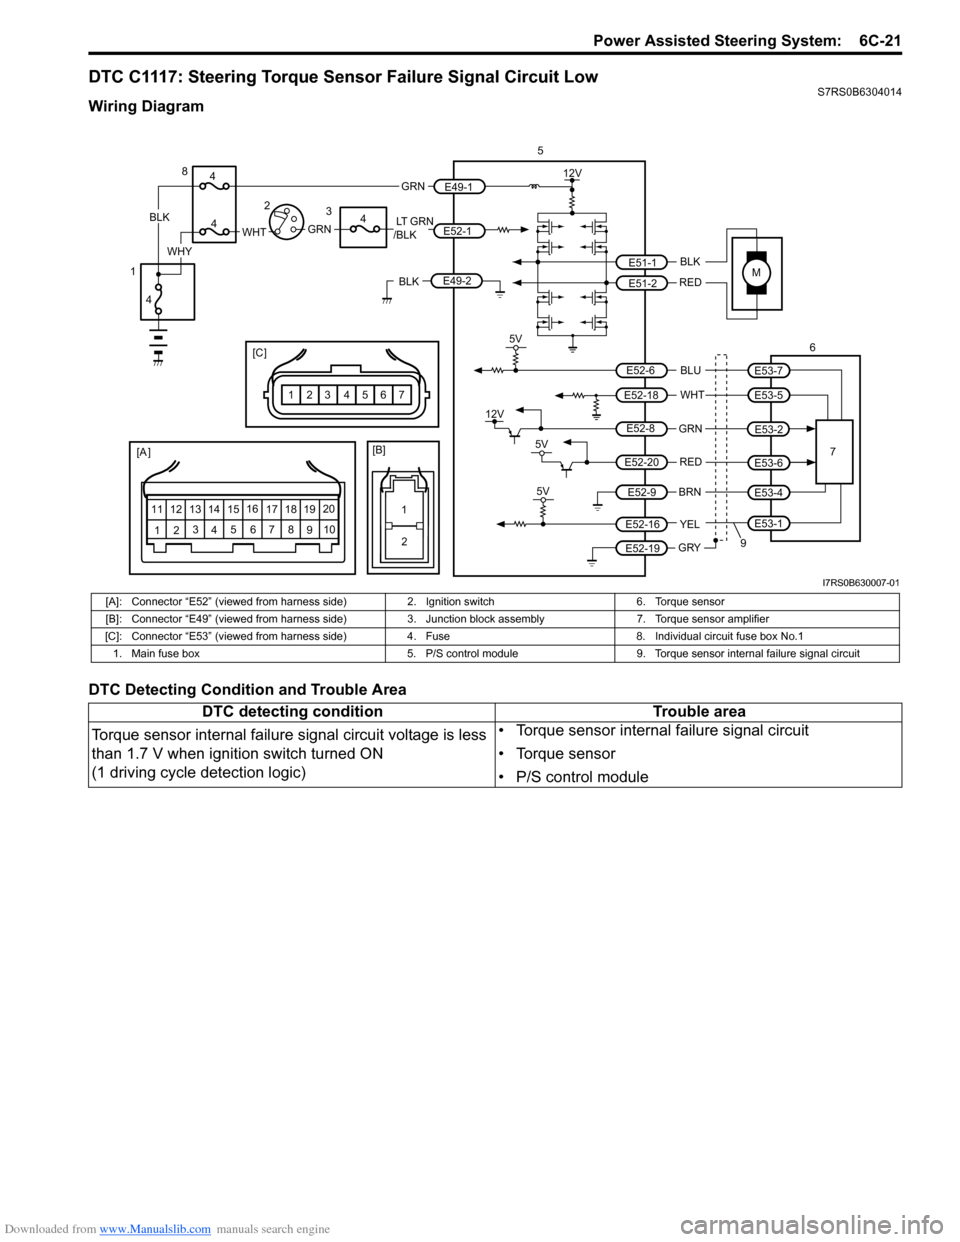 Suzuki Swift 2005 2g Service Workshop Manual Torque 8 Wire Diagram G Page 903